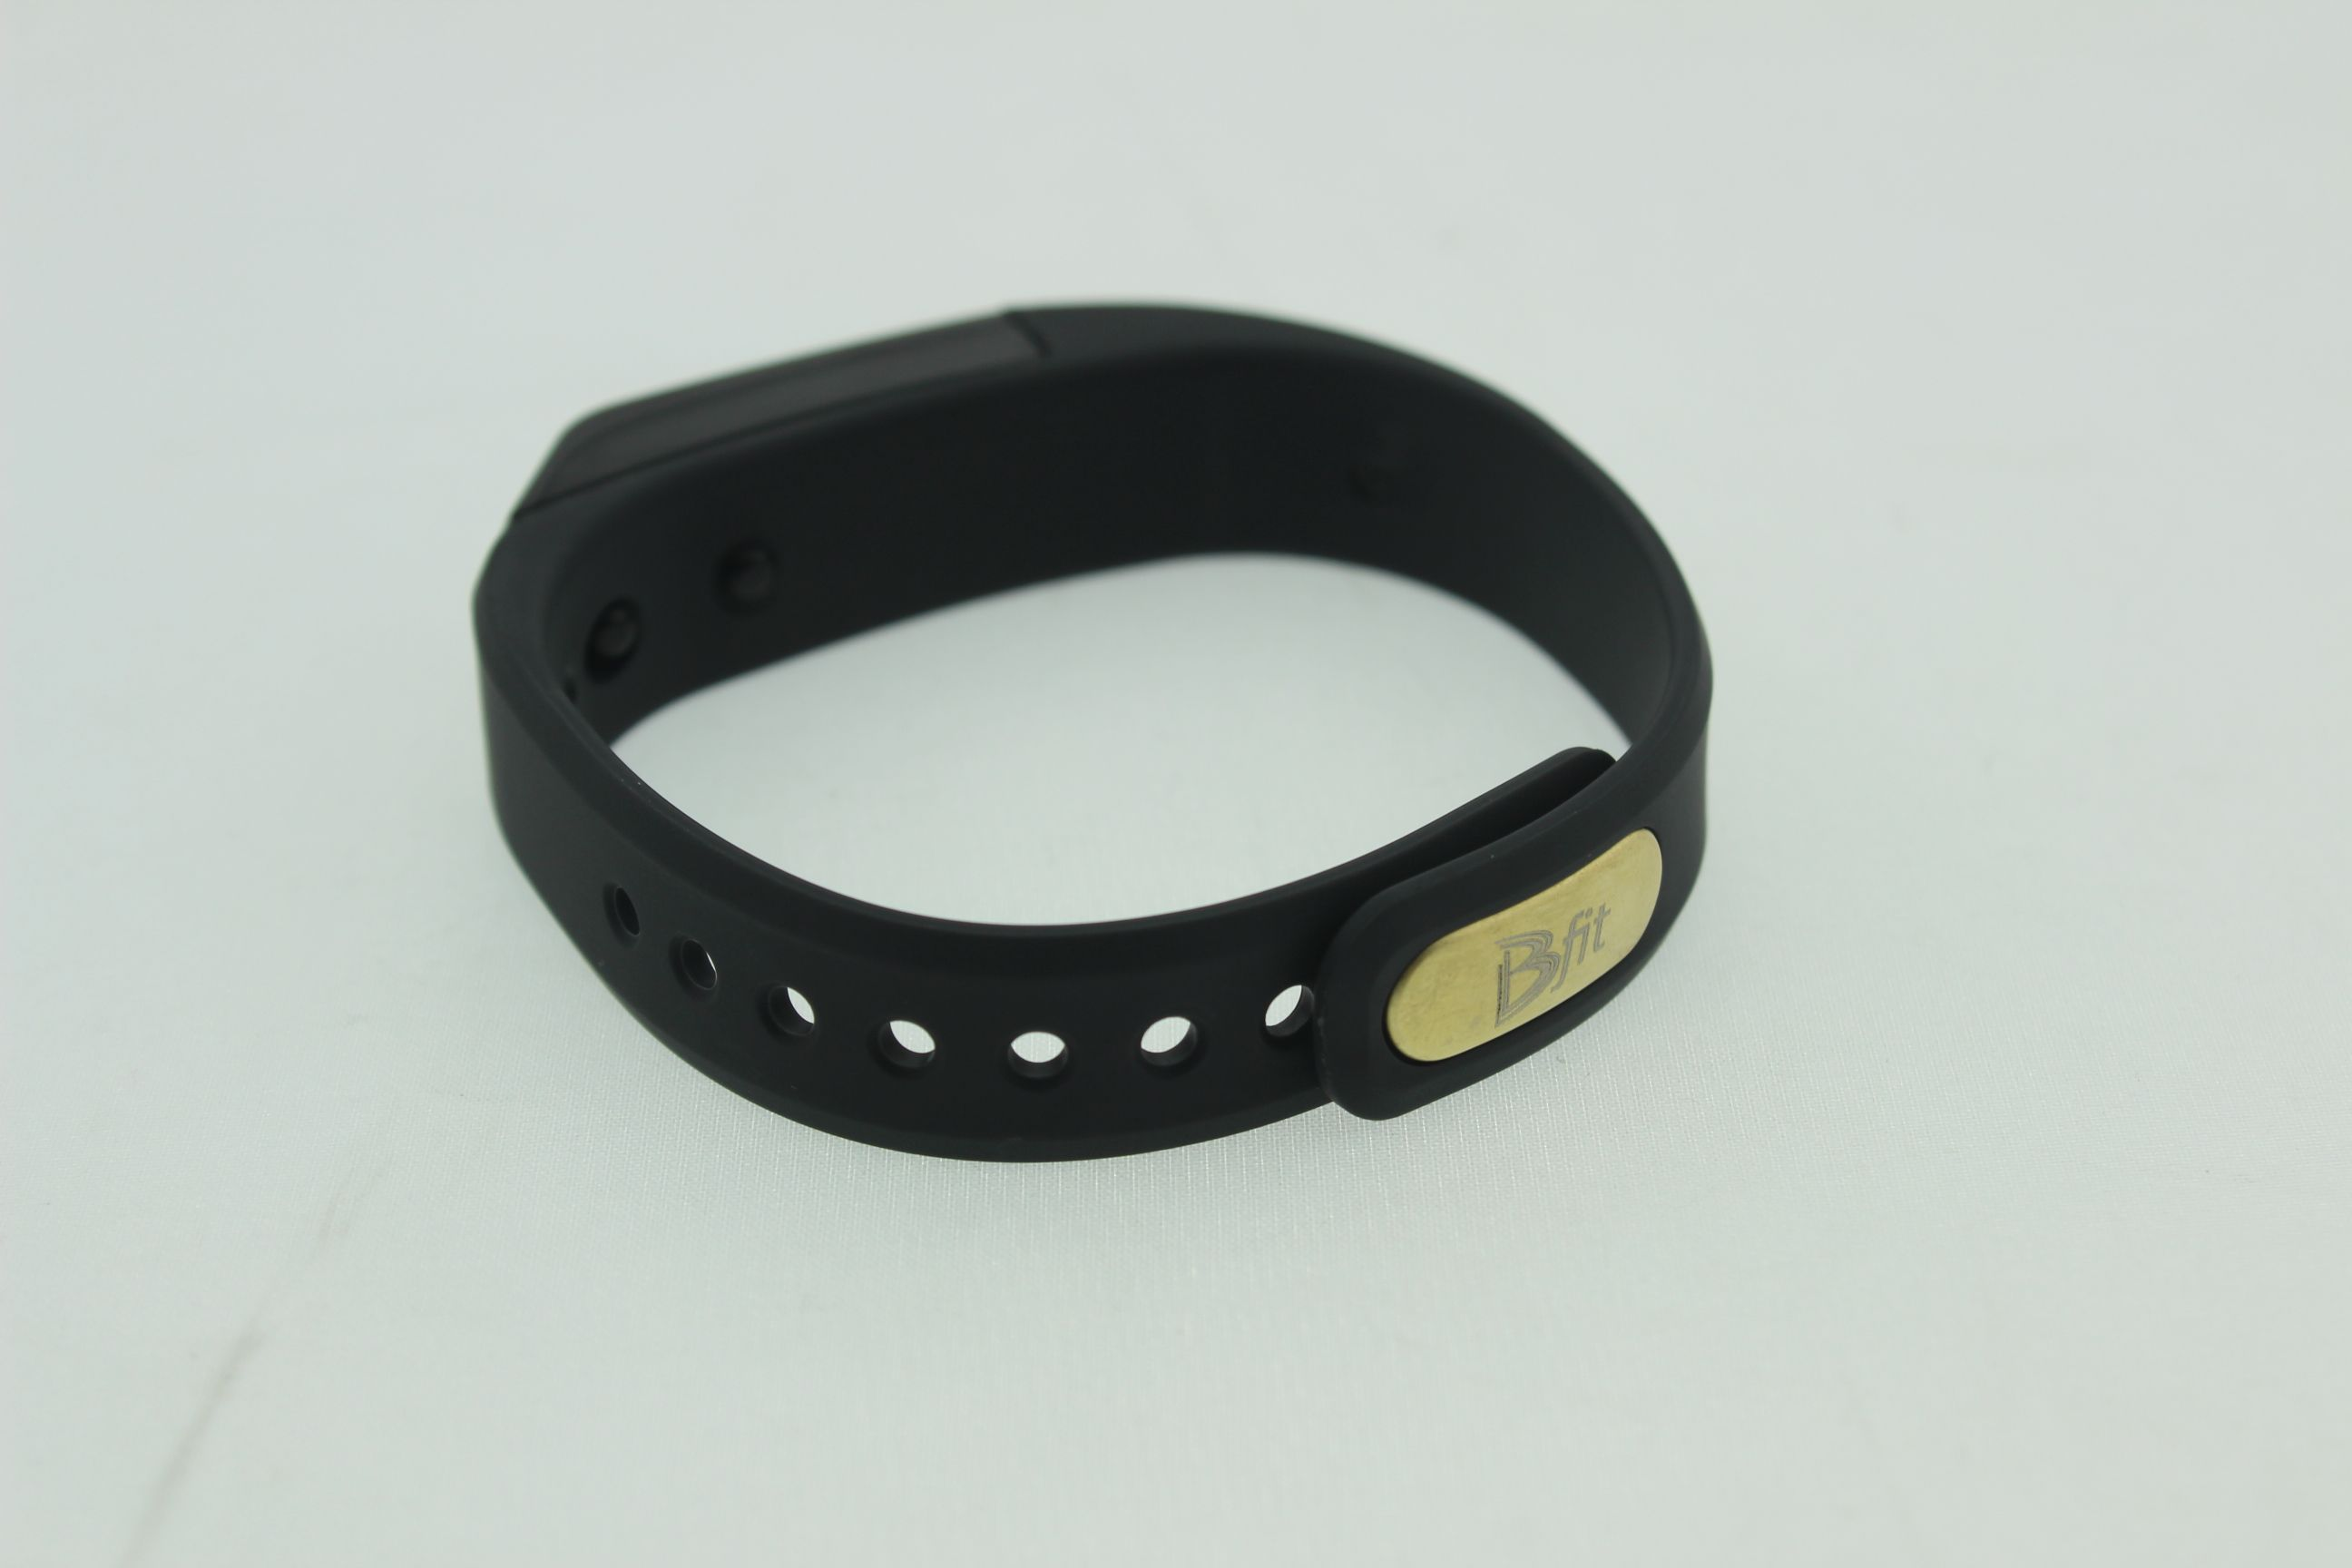 Bfit Smart Fitness Band From Bebalanced Energy Latest And Greatest Fitness Watches For Women Band Workout Fitness Bracelet